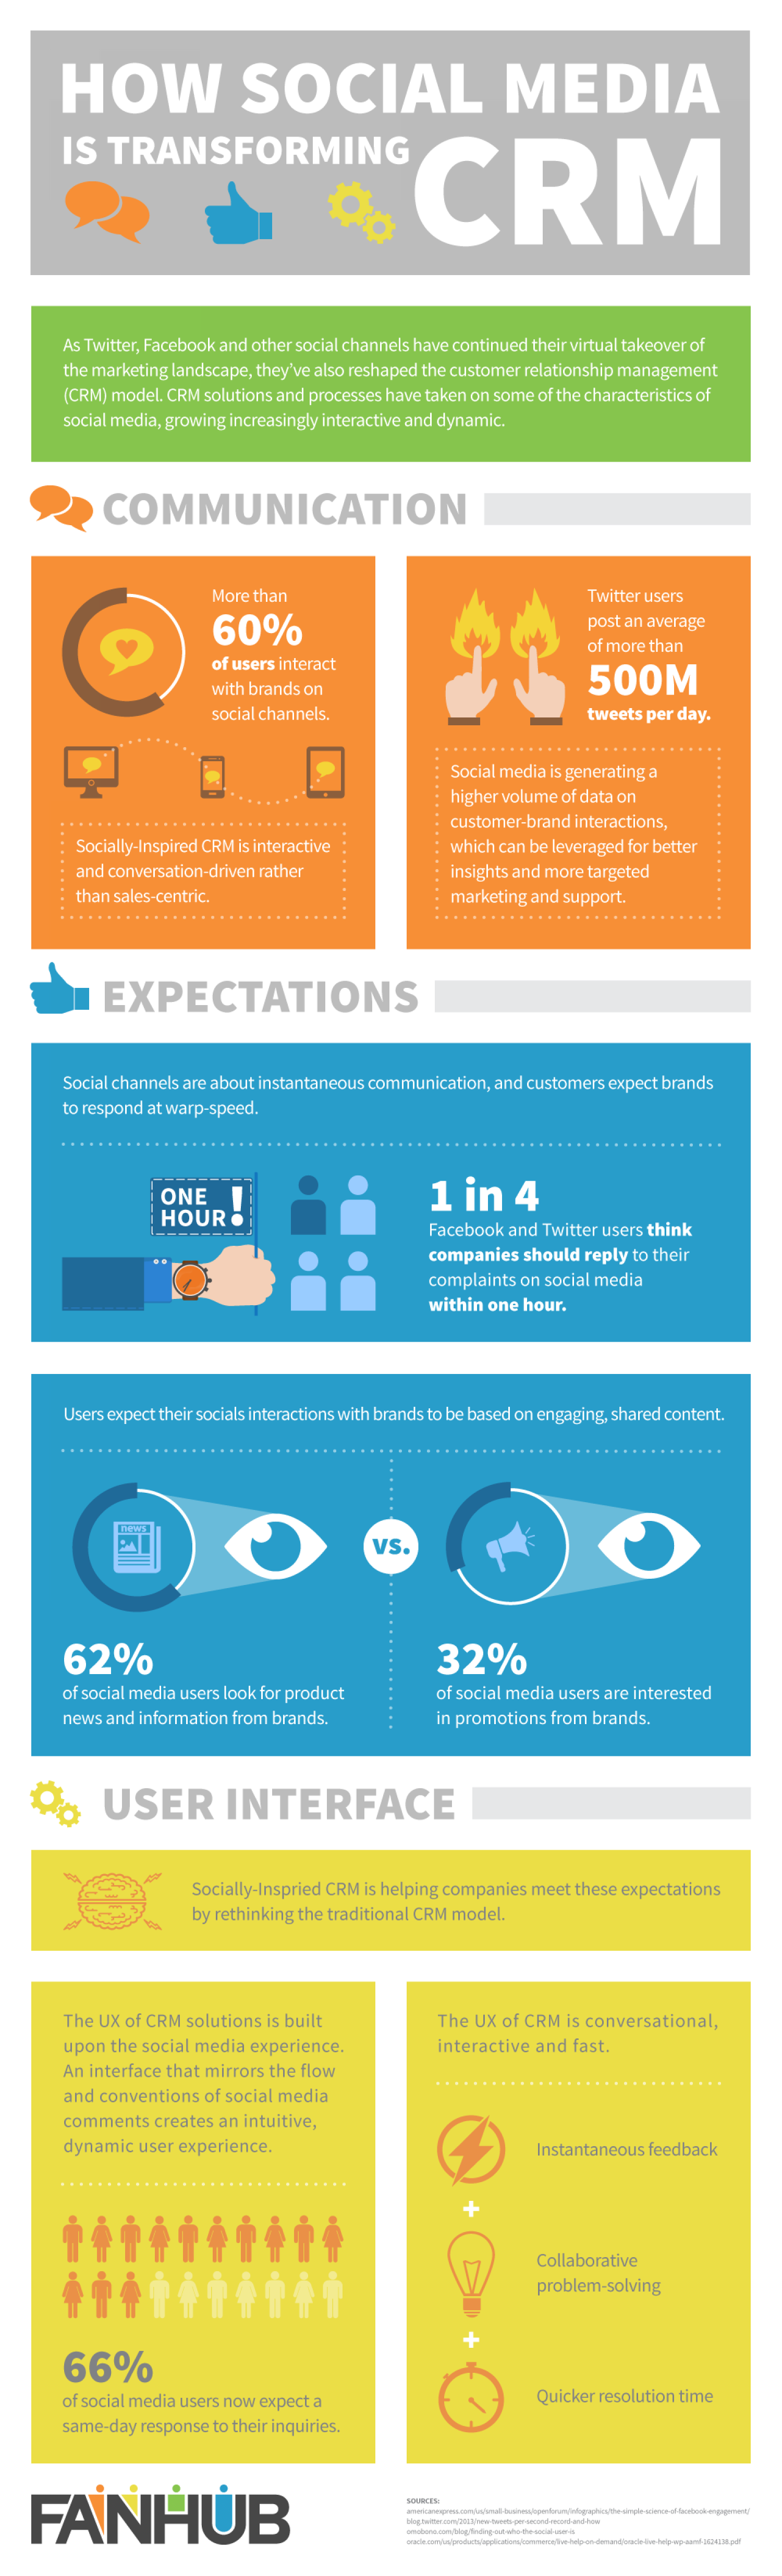 How Social Media is Transforming CRM Infographic